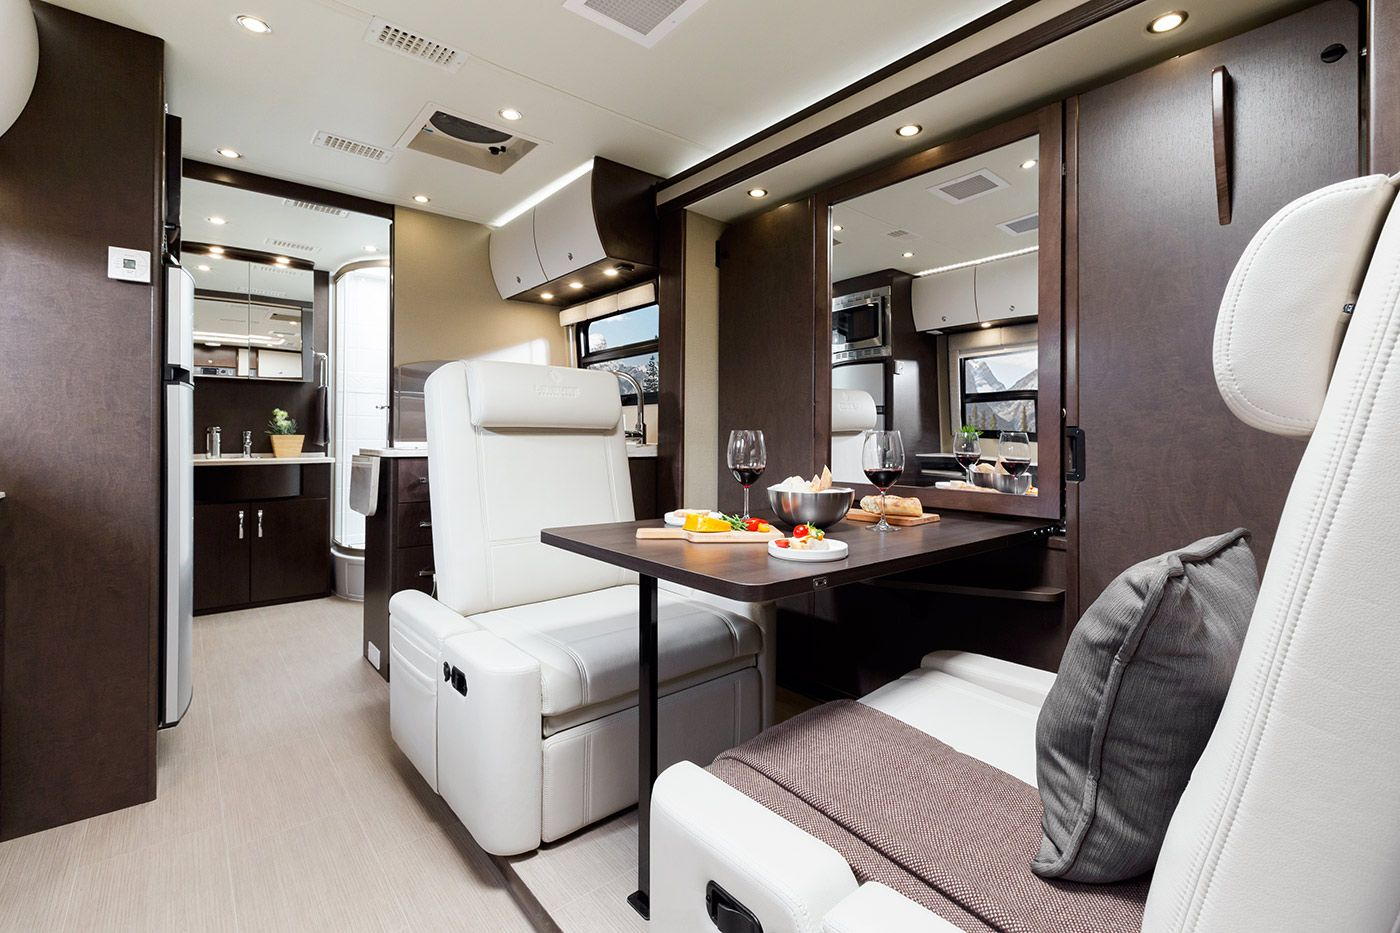 Related image Leisure travel vans, Murphy bed